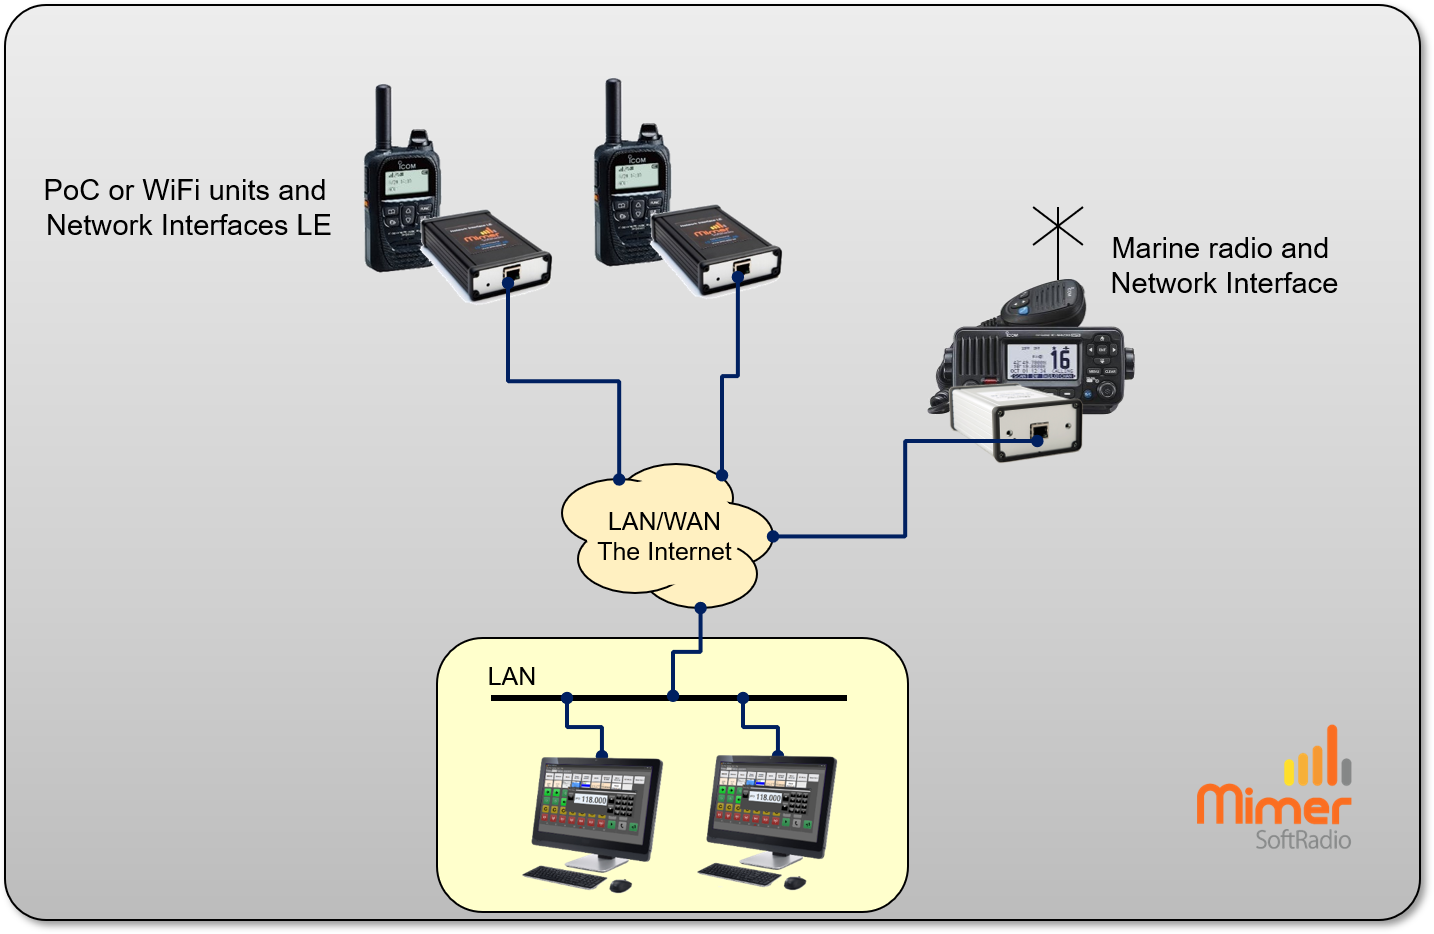 Two LTE-Radios and one Marine Radio controled by two dispatchers